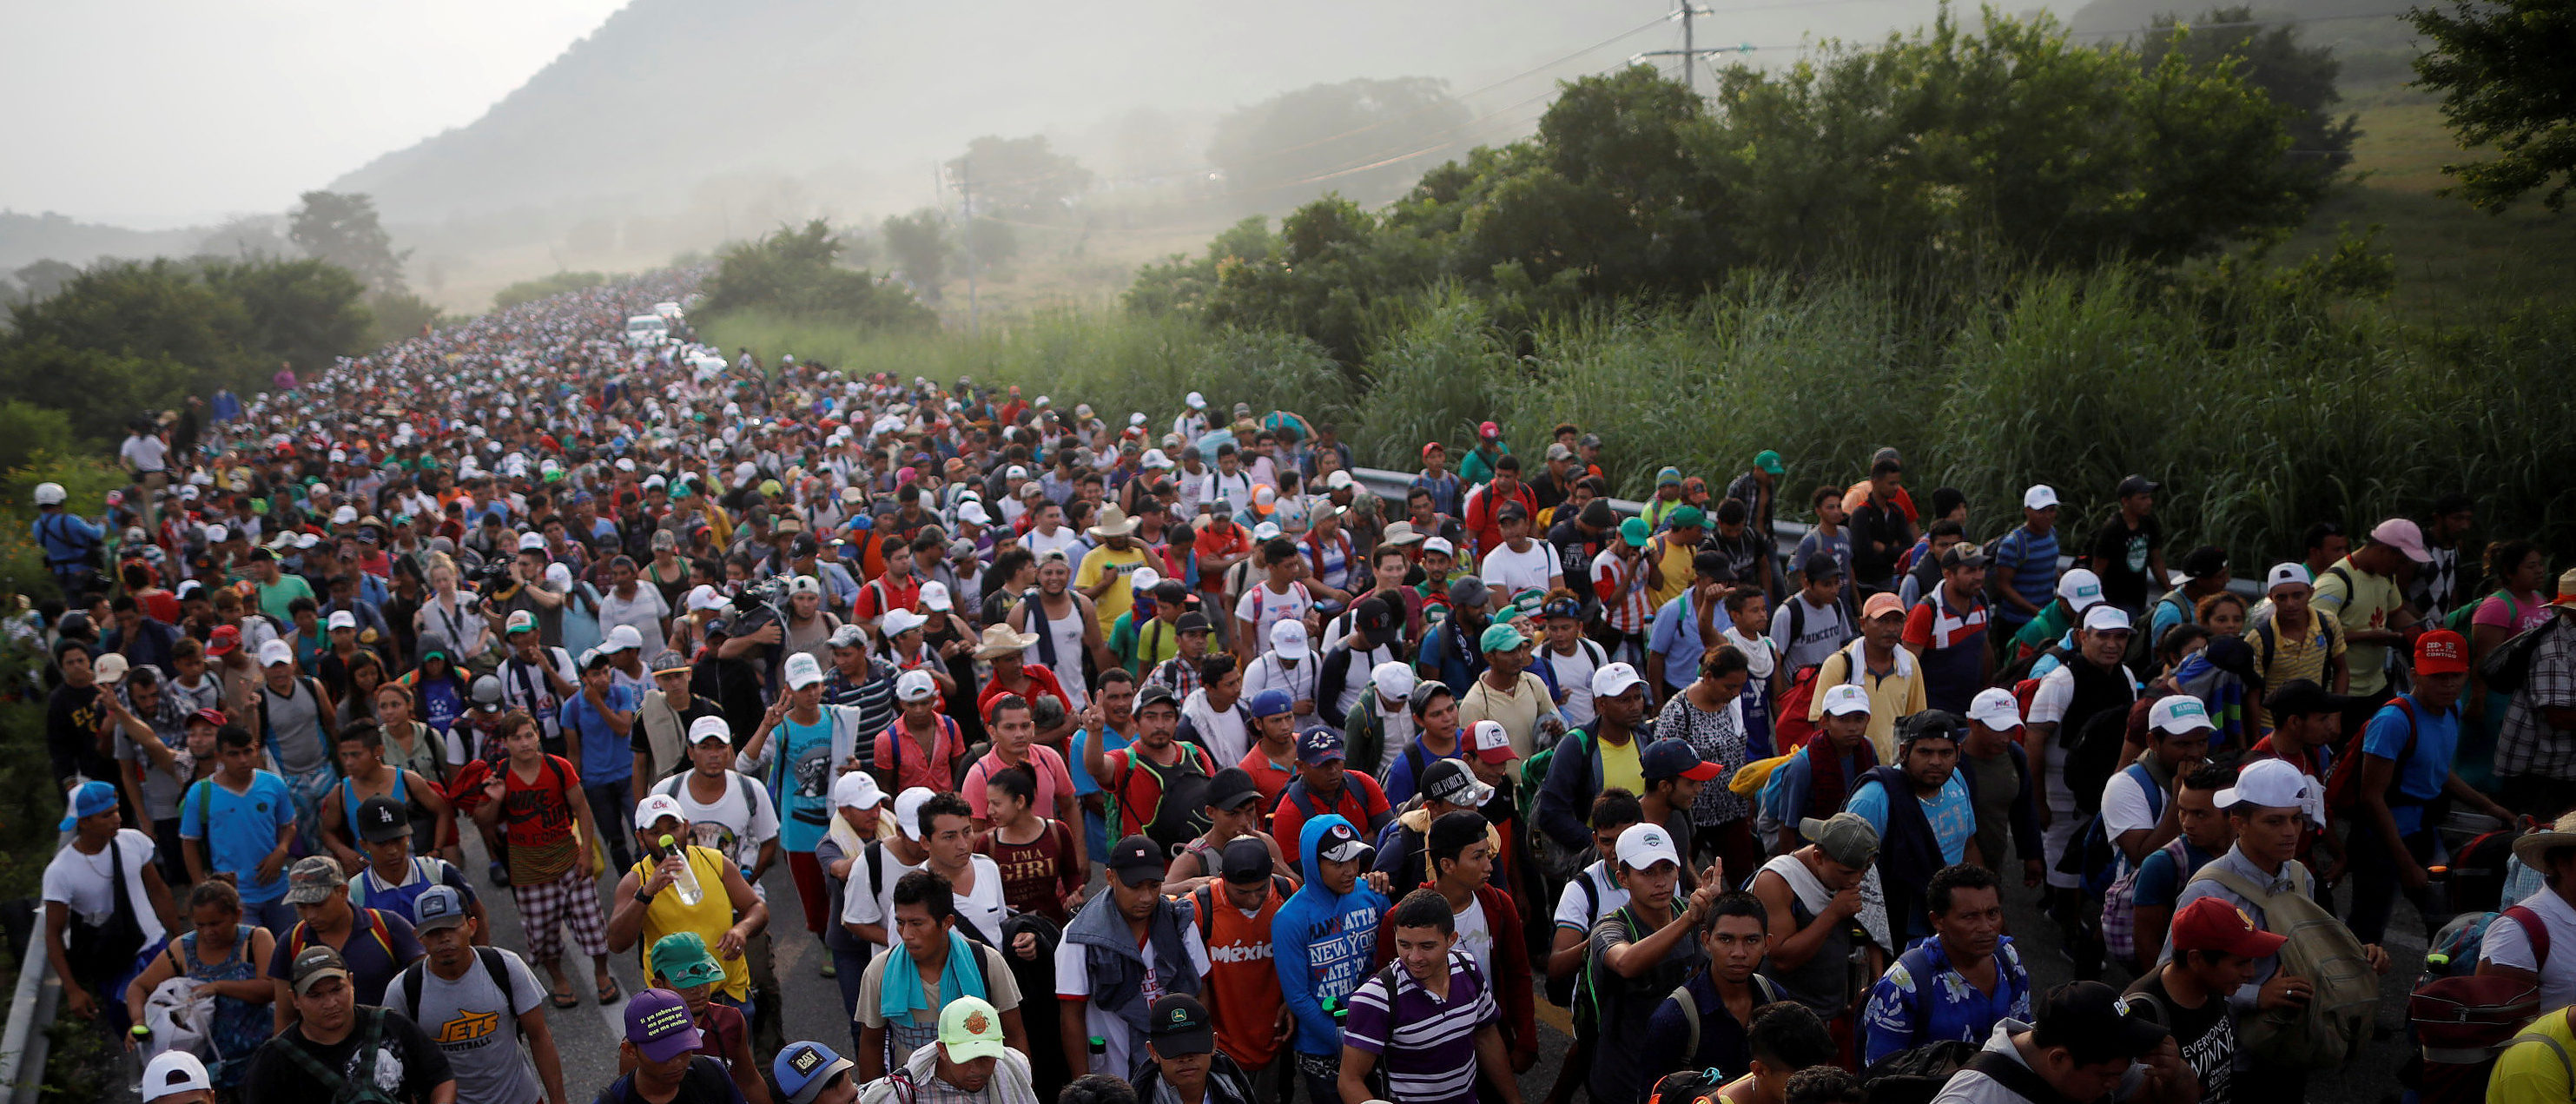 """A caravan of thousands of migrants from Central America, en route to the United States, makes its way to San Pedro Tapanatepec from Arriaga, Mexico, October 27, 2018. Reuters photographer Ueslei Marcelino: """"The caravan had gone through a tense night in Arriaga - the famous train """"La Bestia"""", which many migrants use to travel north, wasn't running which frustrated their plan to shorten their journey. They continued by road and arrived at a police blockade. The migrants moved closer together to try to protect themselves as they feared the police might take action to stop the advance of the caravan. Tense moments ensued before the police allowed the migrants to pass. When I saw a van parked at the side of the road I climbed on the roof and was astonished at how many people I could see from up above."""" REUTERS/Ueslei Marcelino."""